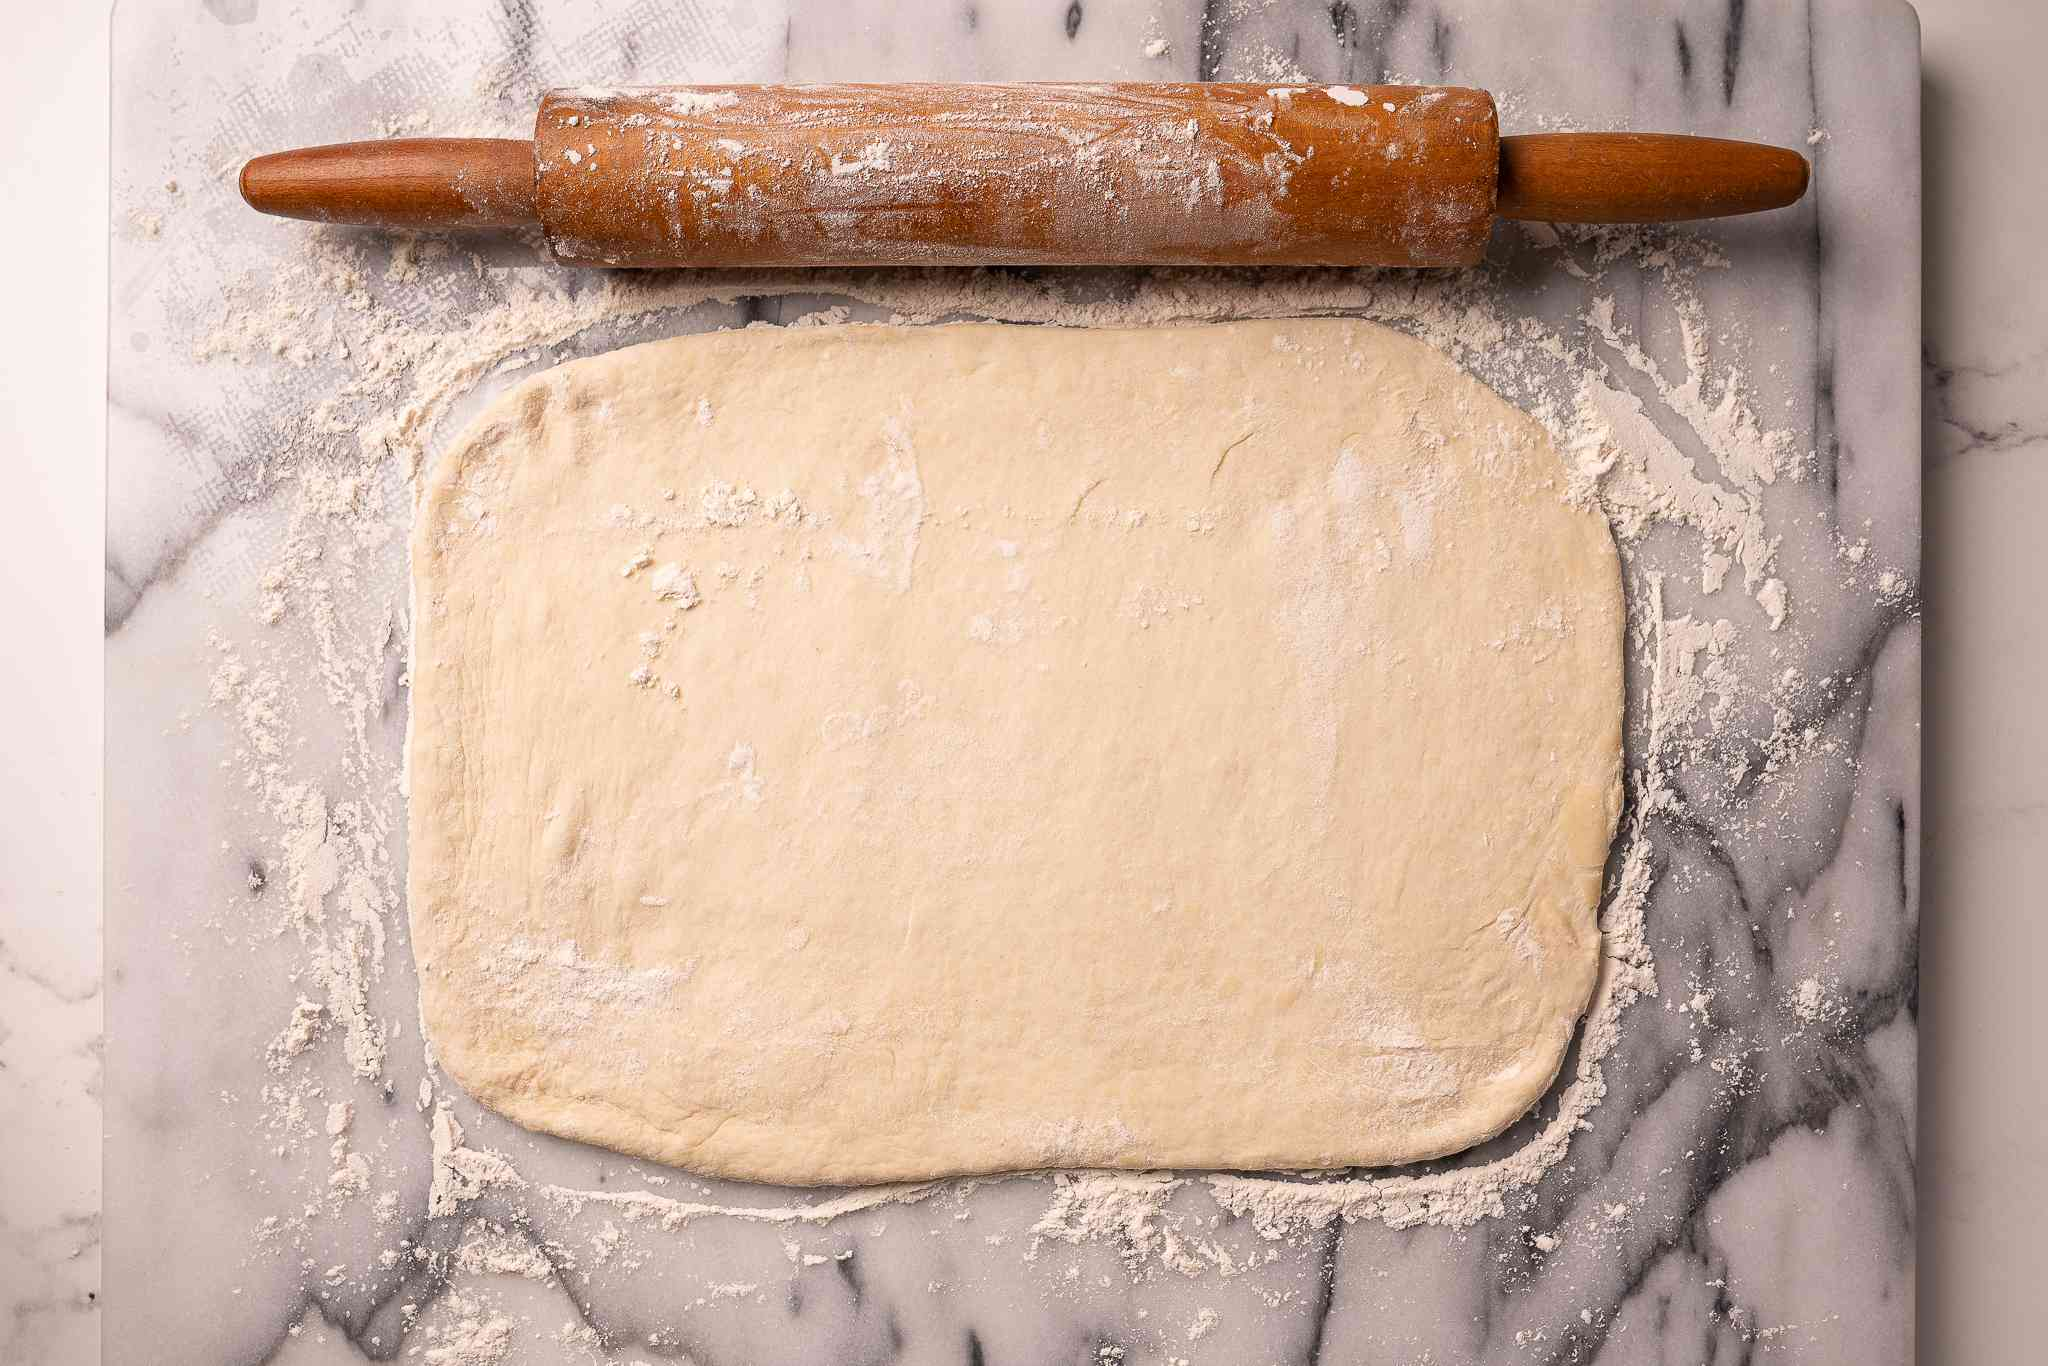 Bread dough rolled out into a rectangle on a floured surface